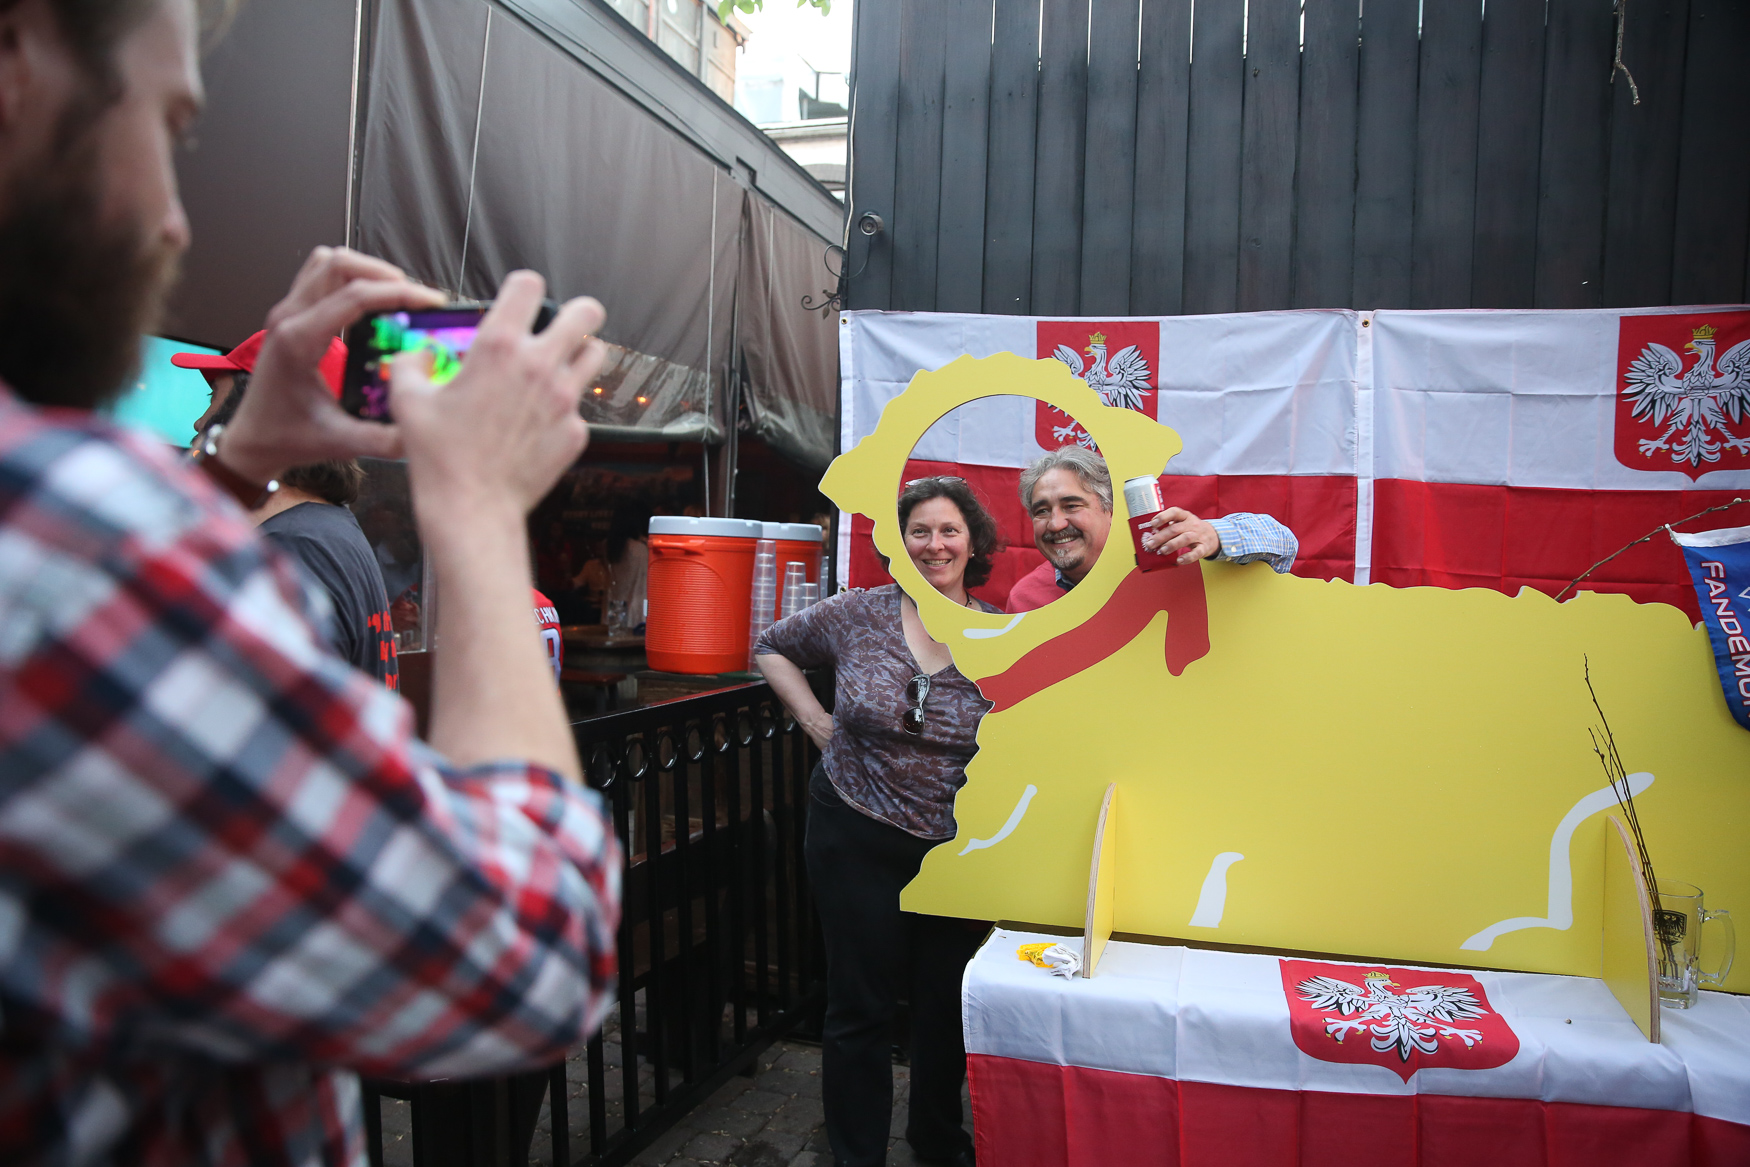 Dyngus Day, a traditional Polish holiday that follows Easter, came to H Street NE at Biergarten Haus. The festivities included polka music, participants spraying each other with water guns and whacking each other with pussy willow, in accordance with tradition. The bar also offered traditional snacks like perogies and sausage. (Amanda Andrade-Rhoades/DC Refined)